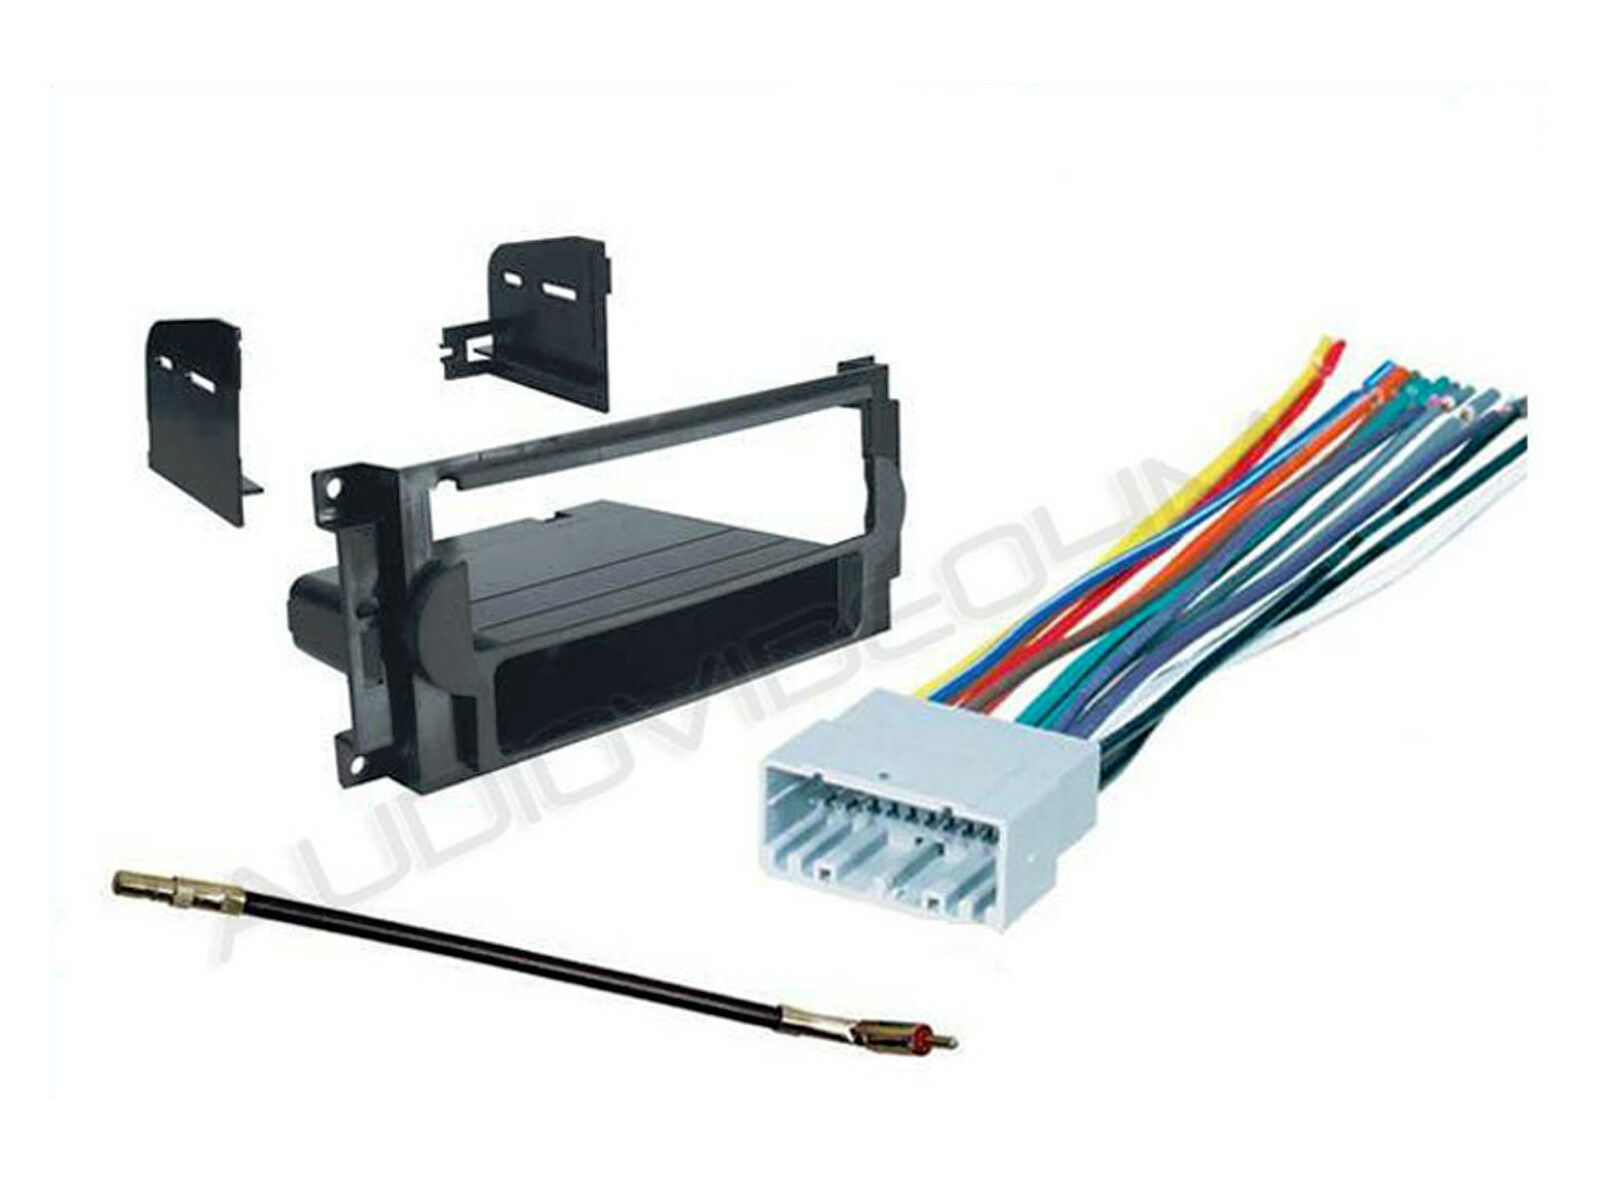 s l1600 2007 2008 dodge caliber car radio dash mounting kit stereo wire Dodge Factory Radio Wiring Diagram at gsmx.co